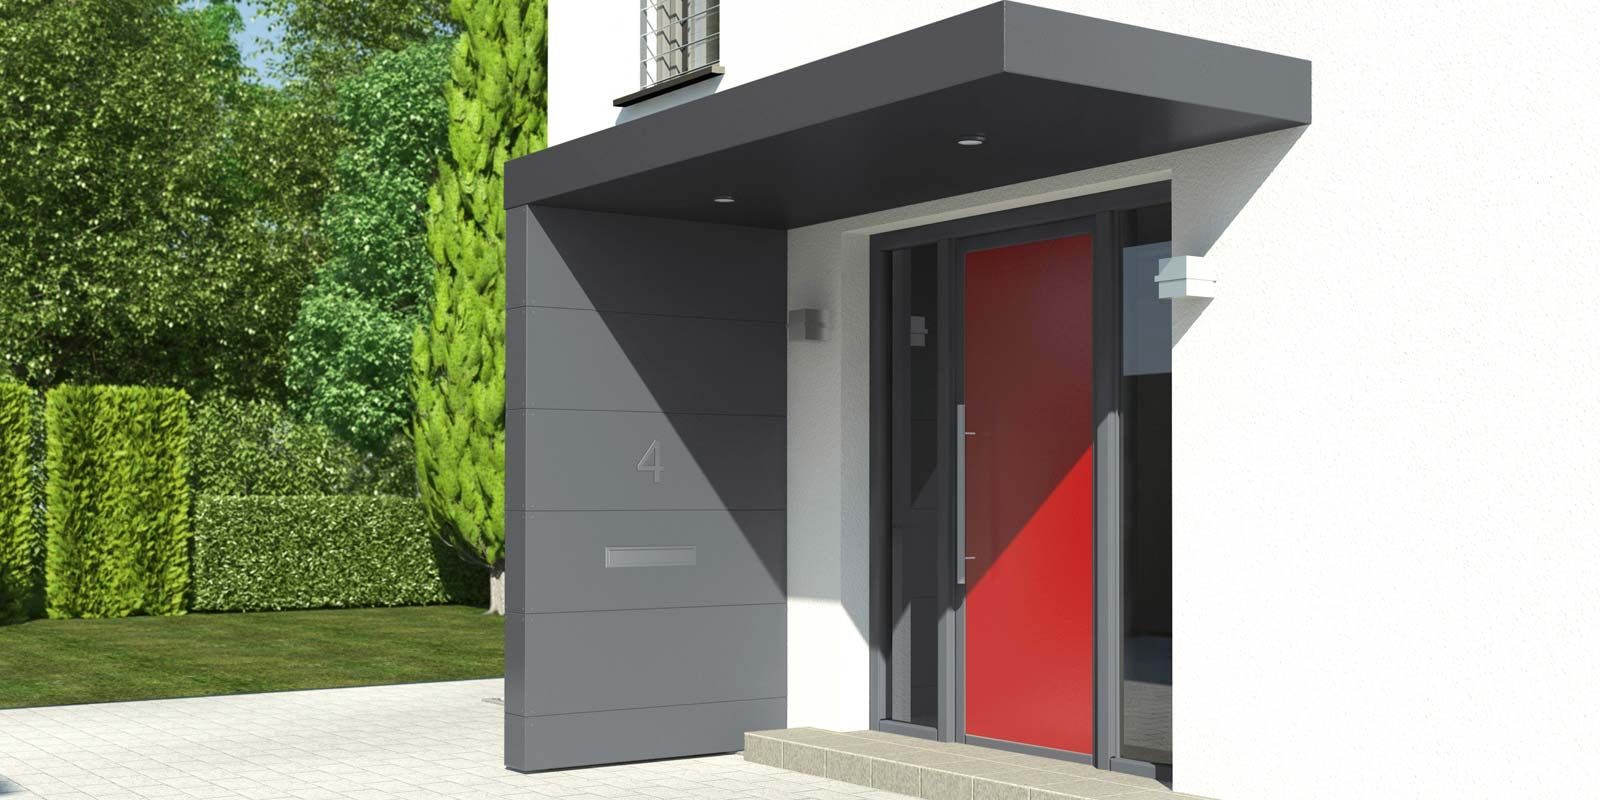 Haustürüberdachung Walmdach Contemporary Entry Way With Red Front Door And Grey Awning